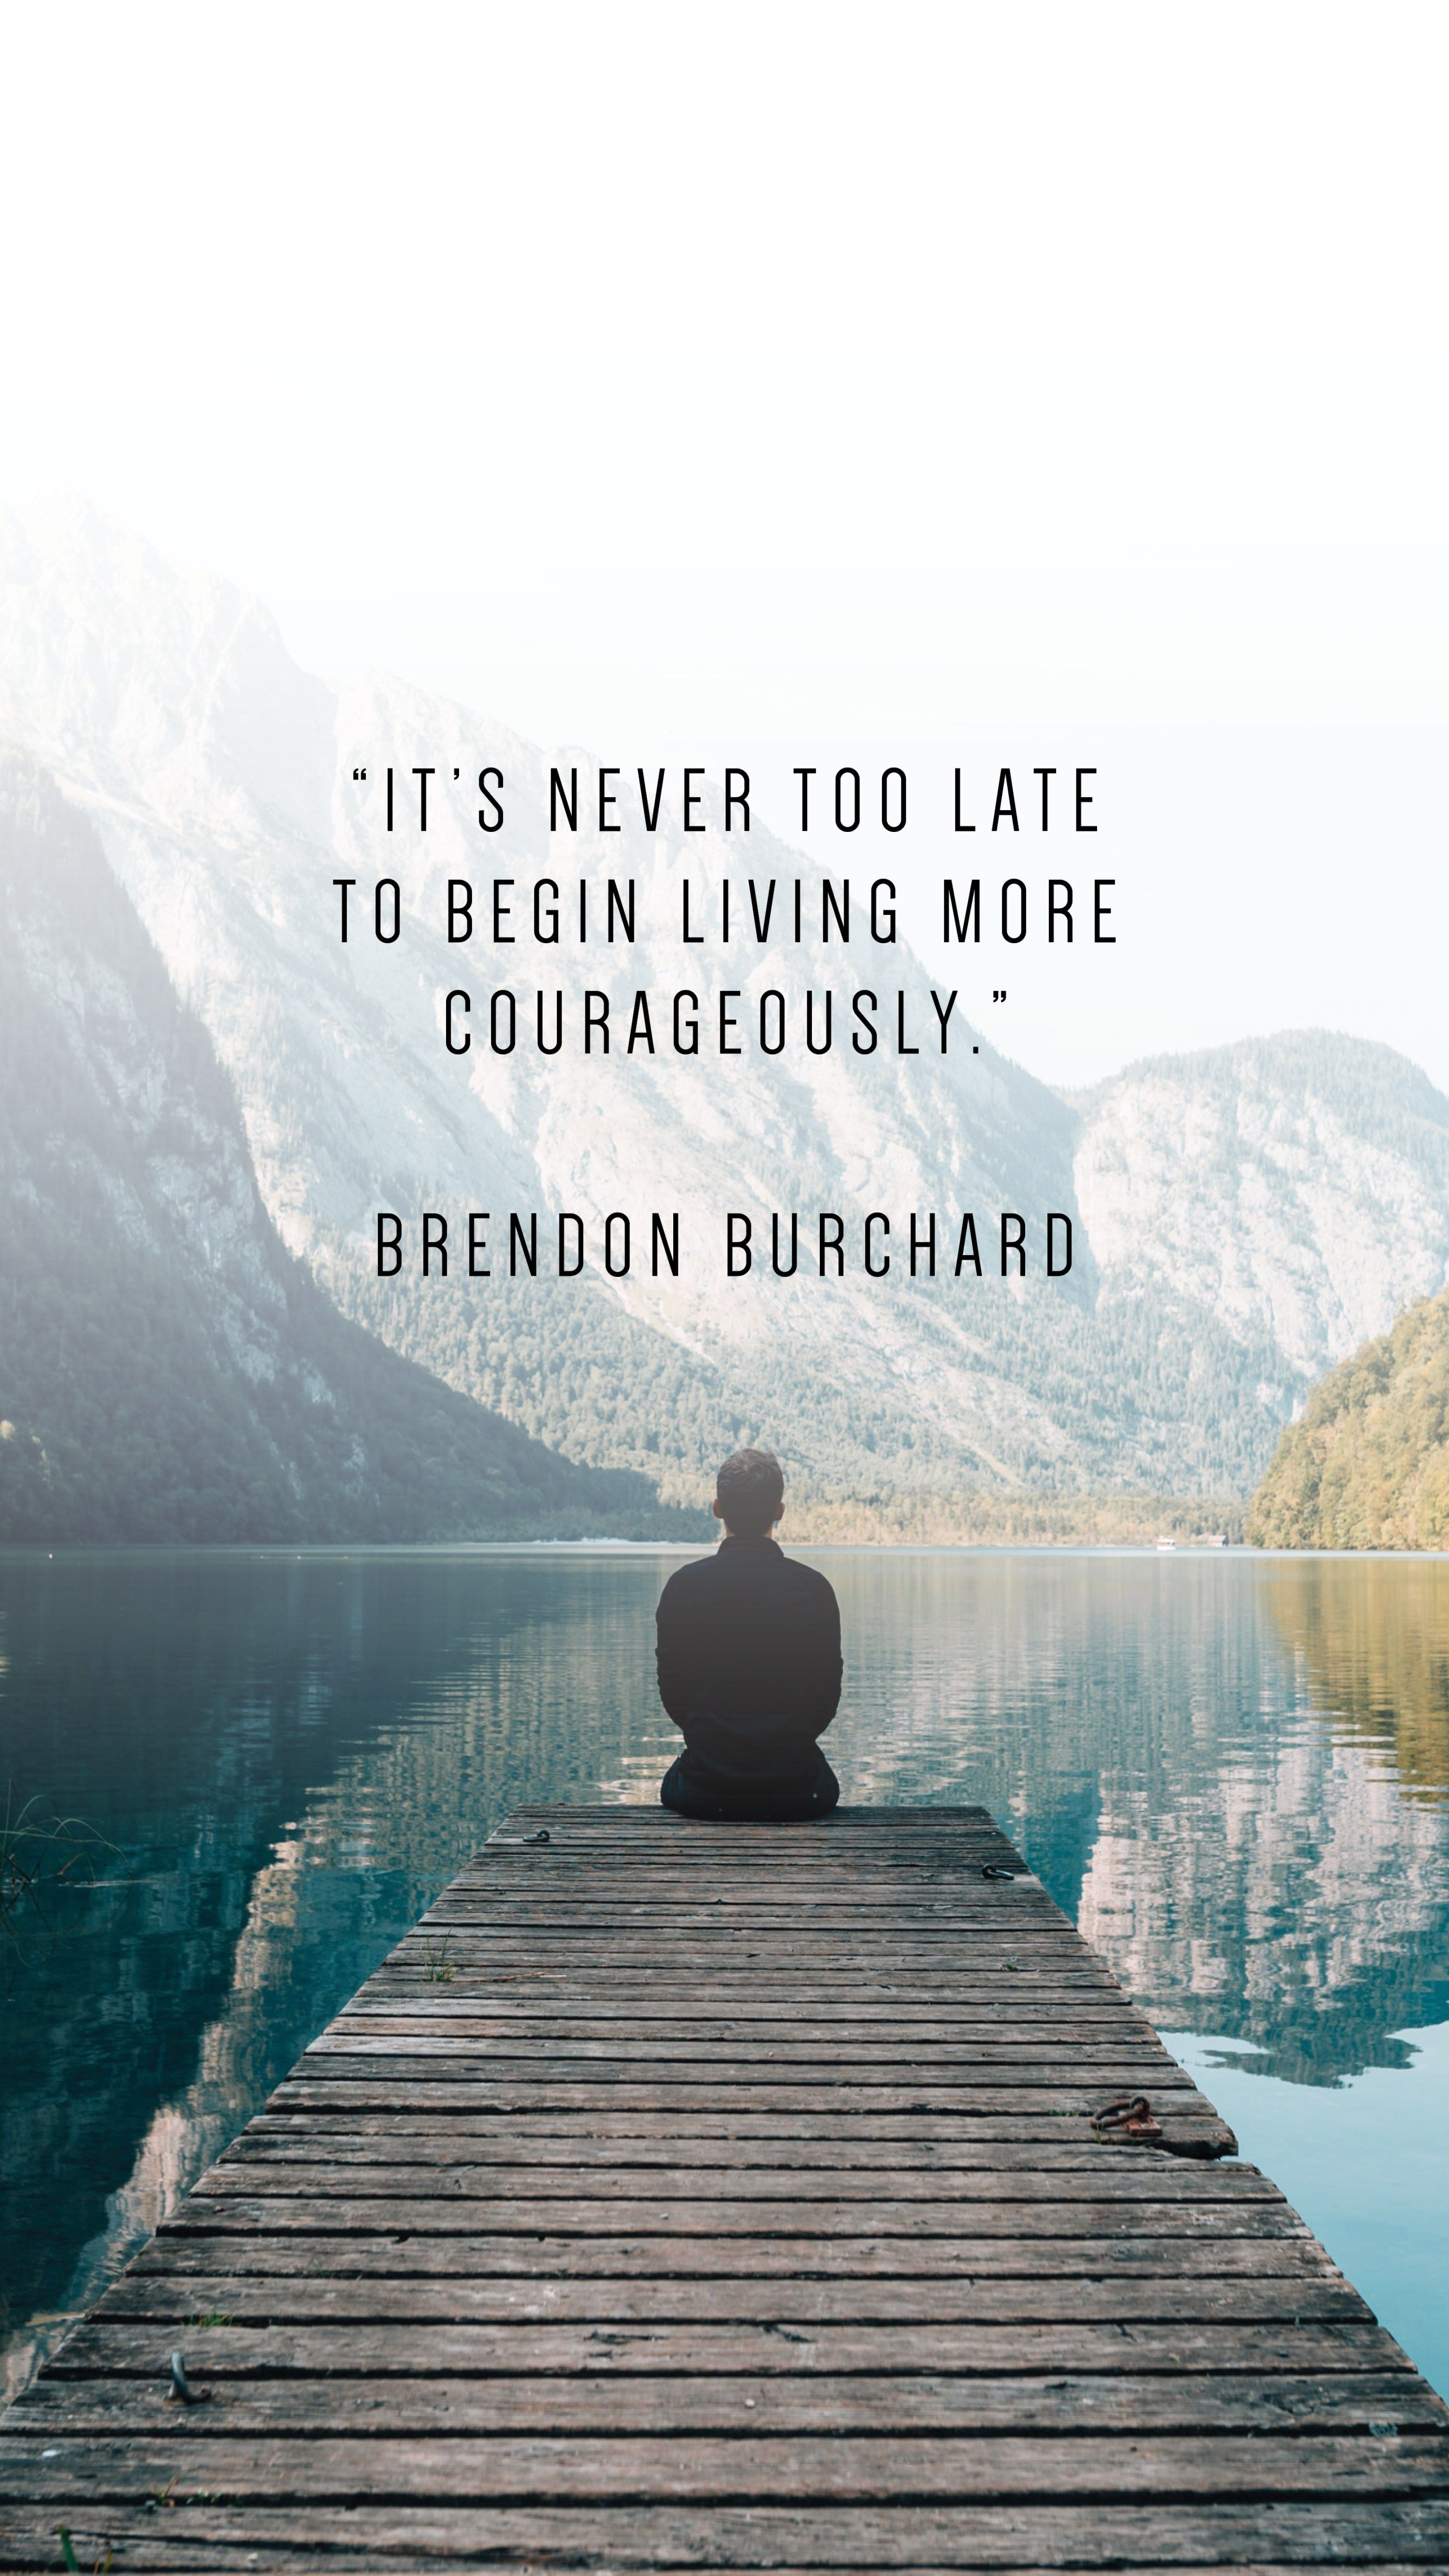 30 Phone Wallpapers To Inspire Writing From Nowhere In 2020 Brendon Burchard Quotes Words Quotes Positive Quotes